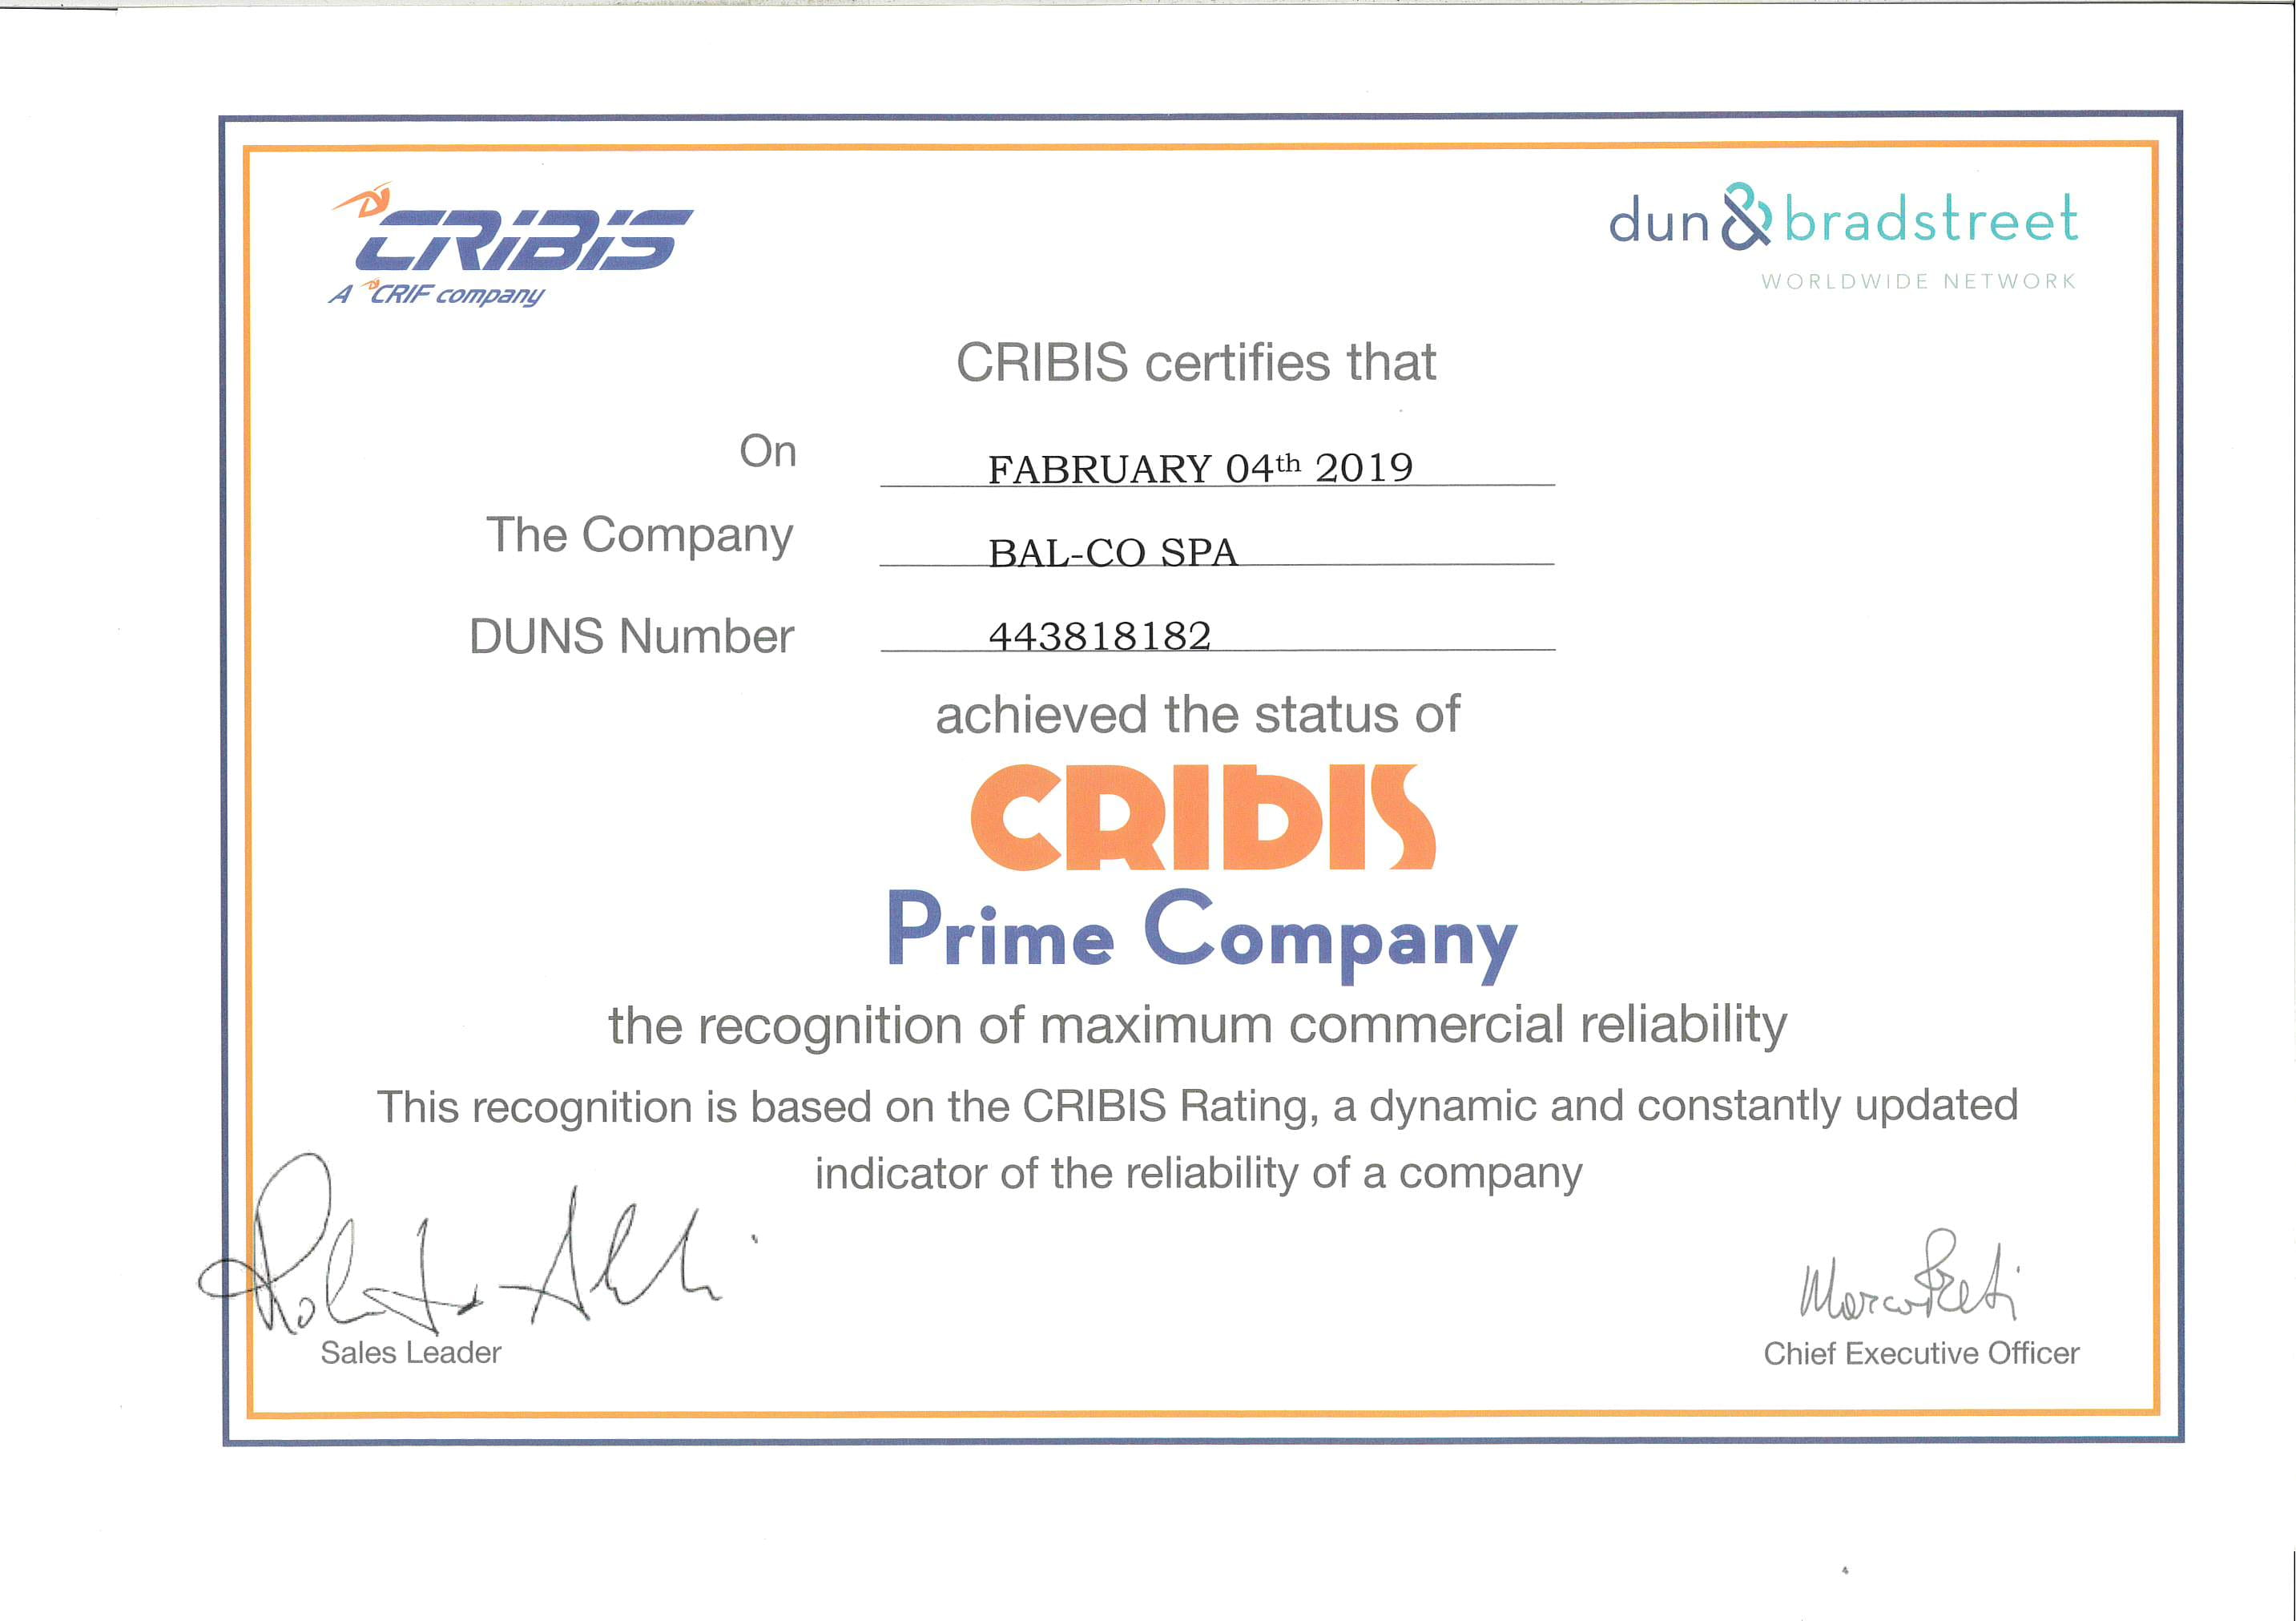 Bal_Co has obtained the CRIBIS Prime Company certification